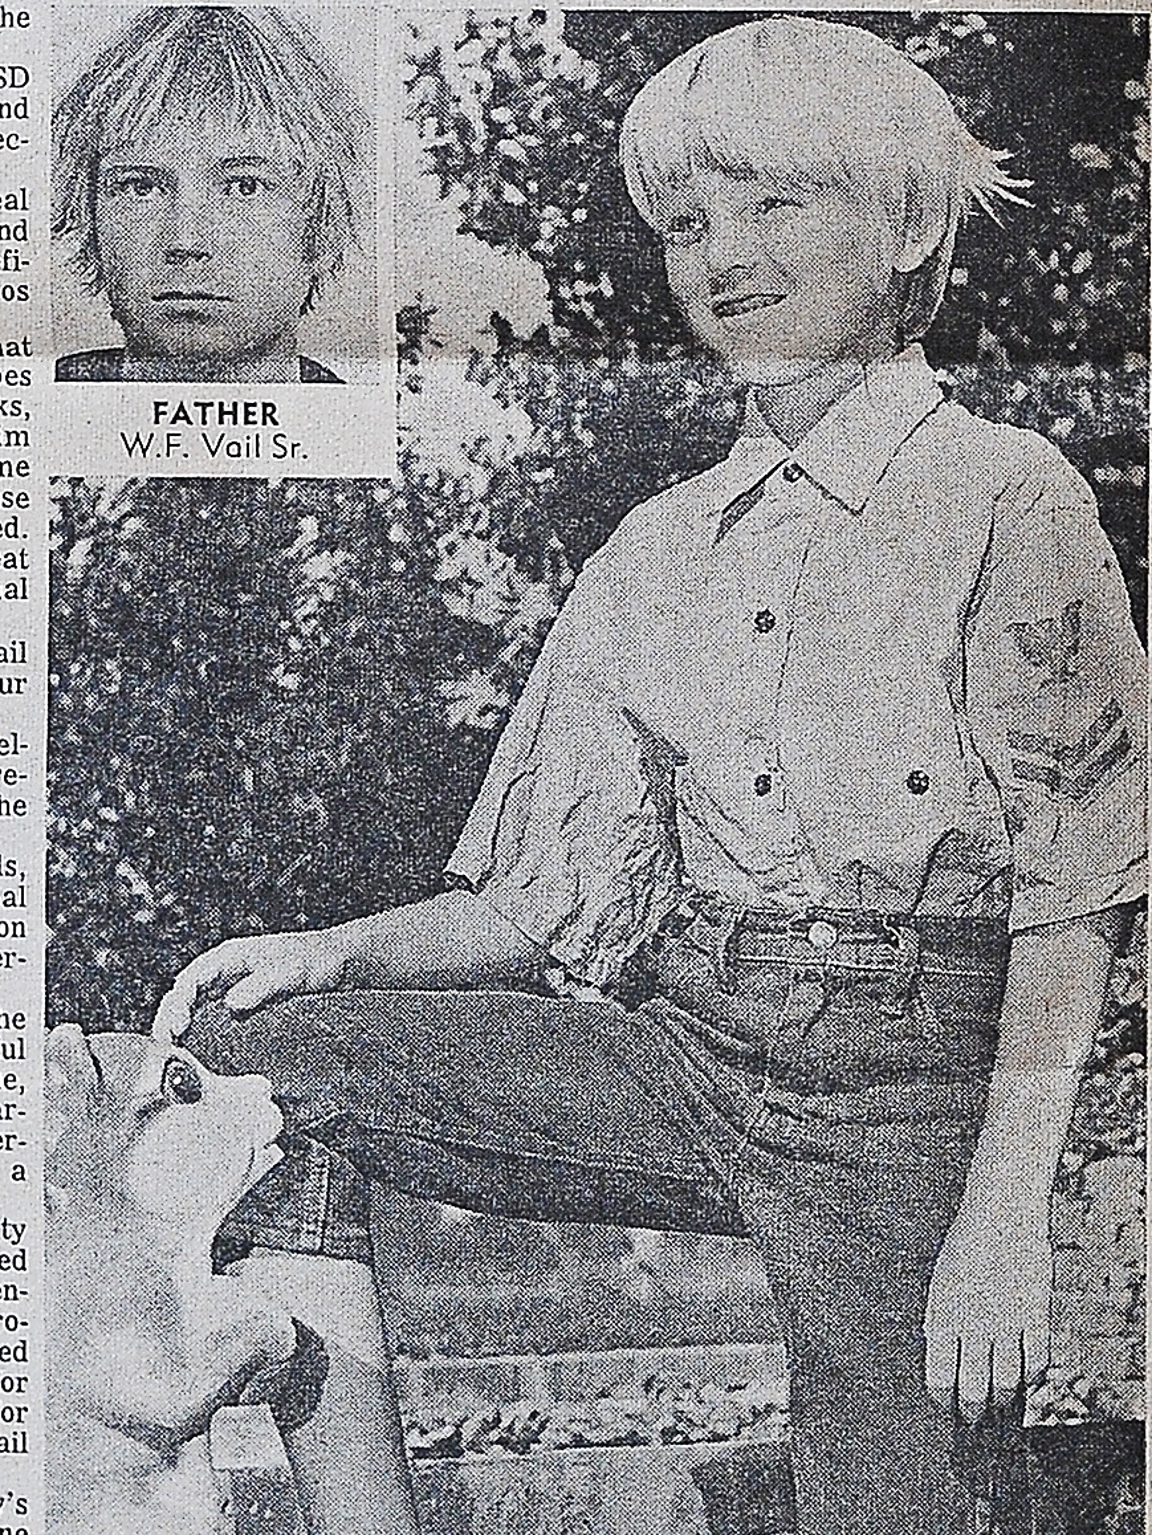 Young Bill Vail pictured in the Jan. 10, 1971, issue